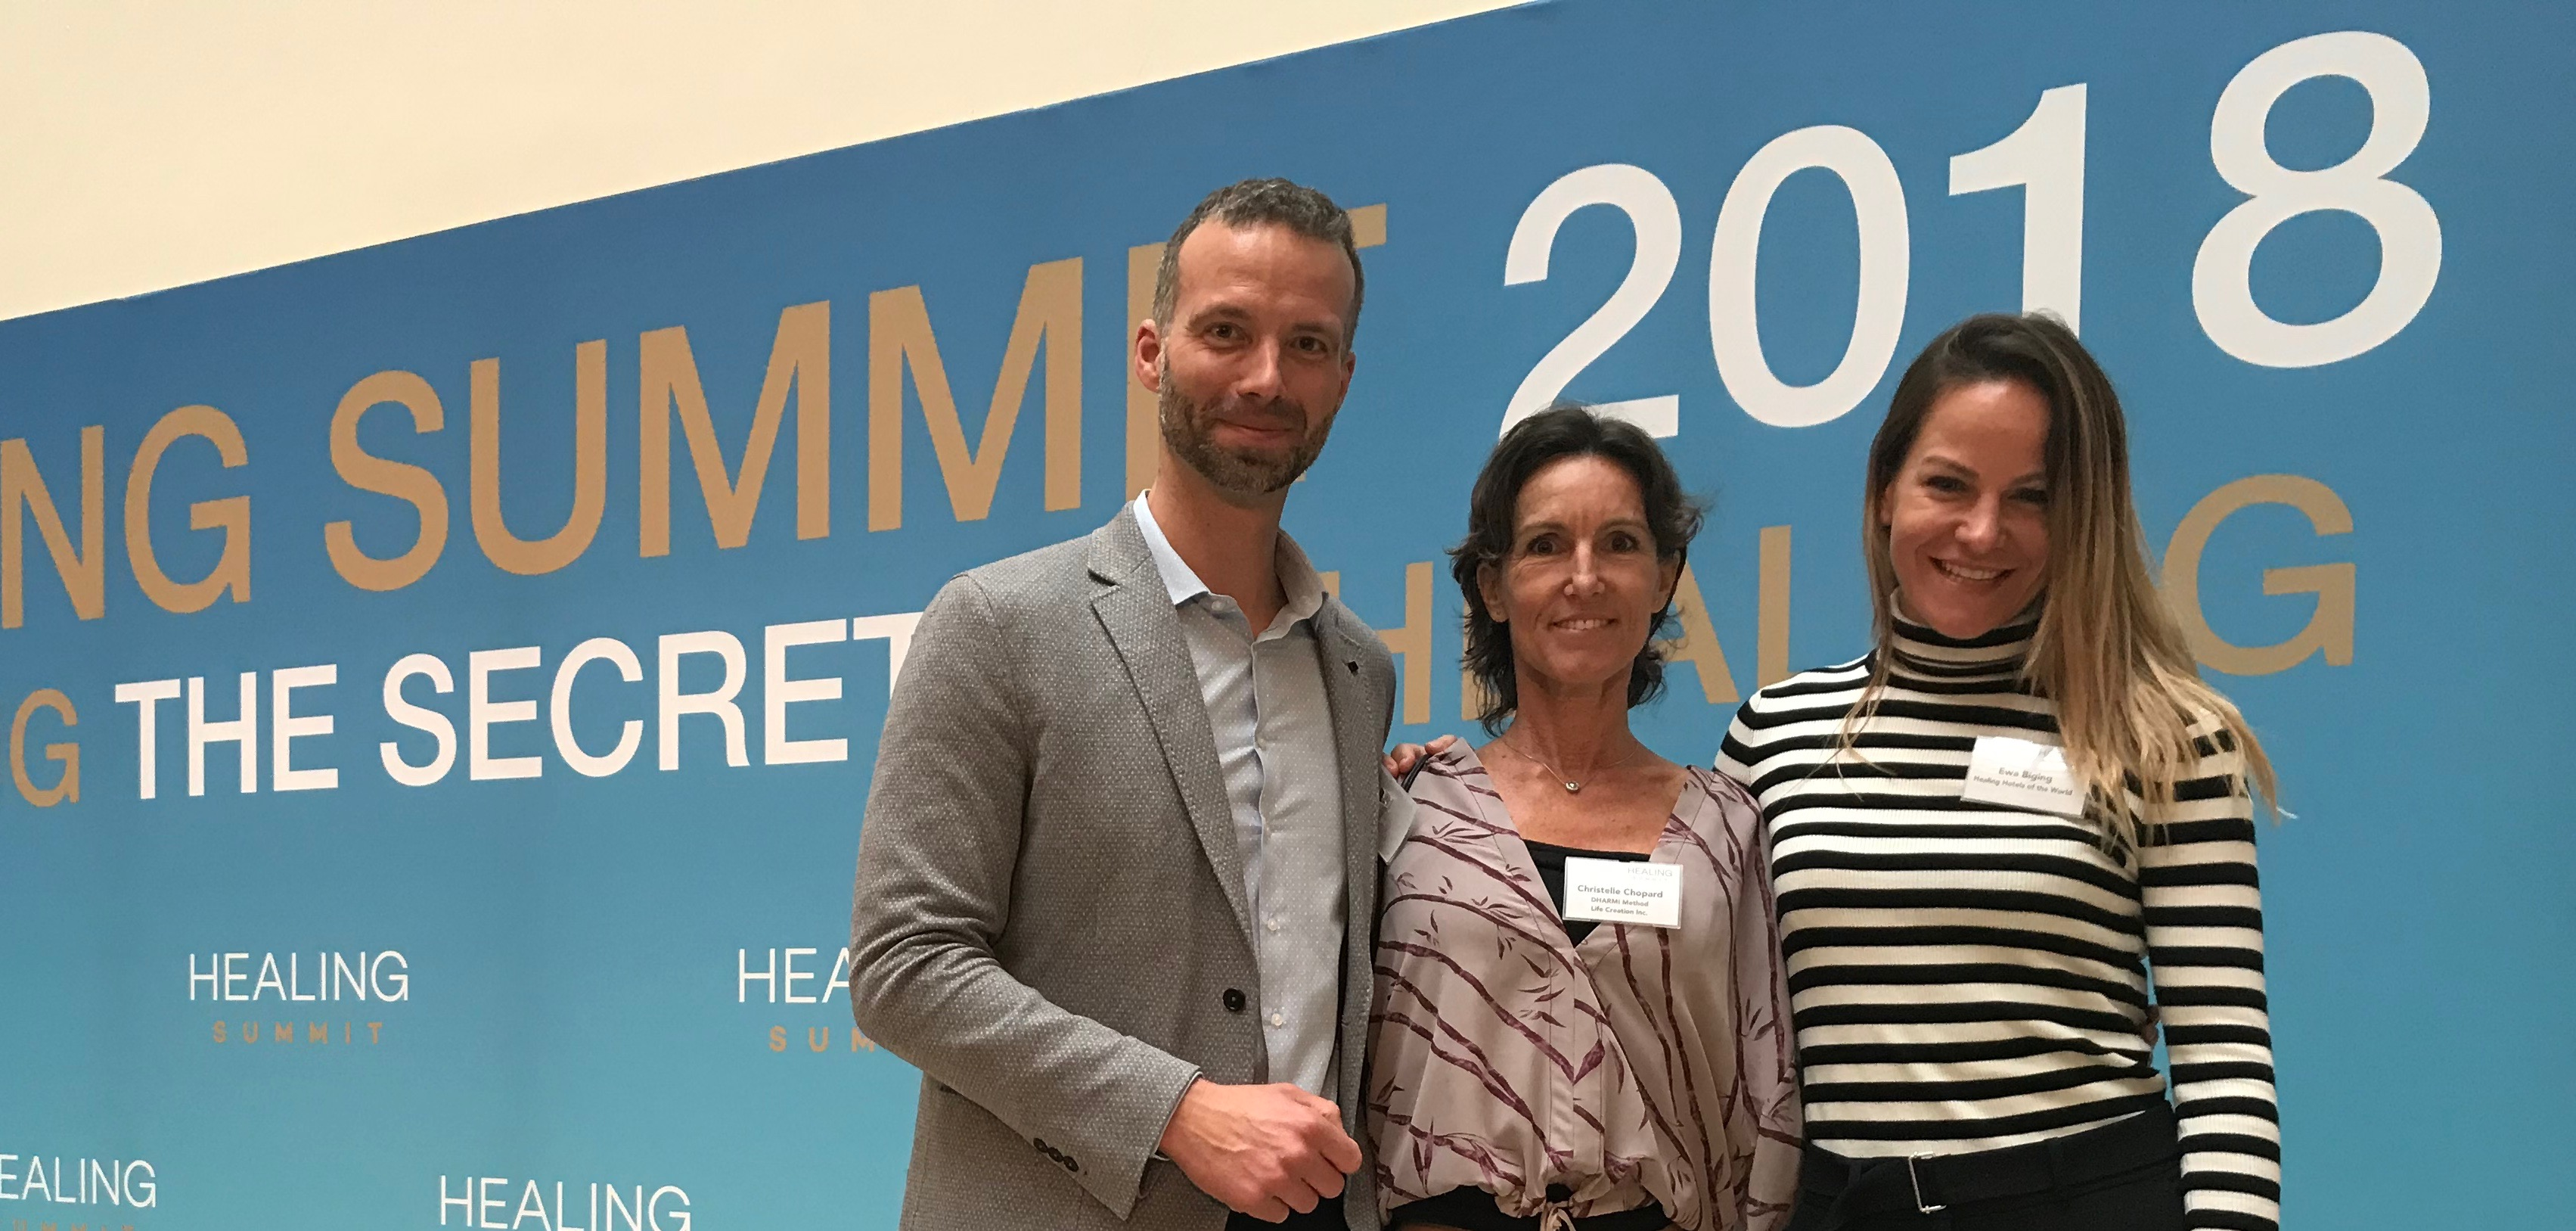 Healing Summit 2019 in Portugal